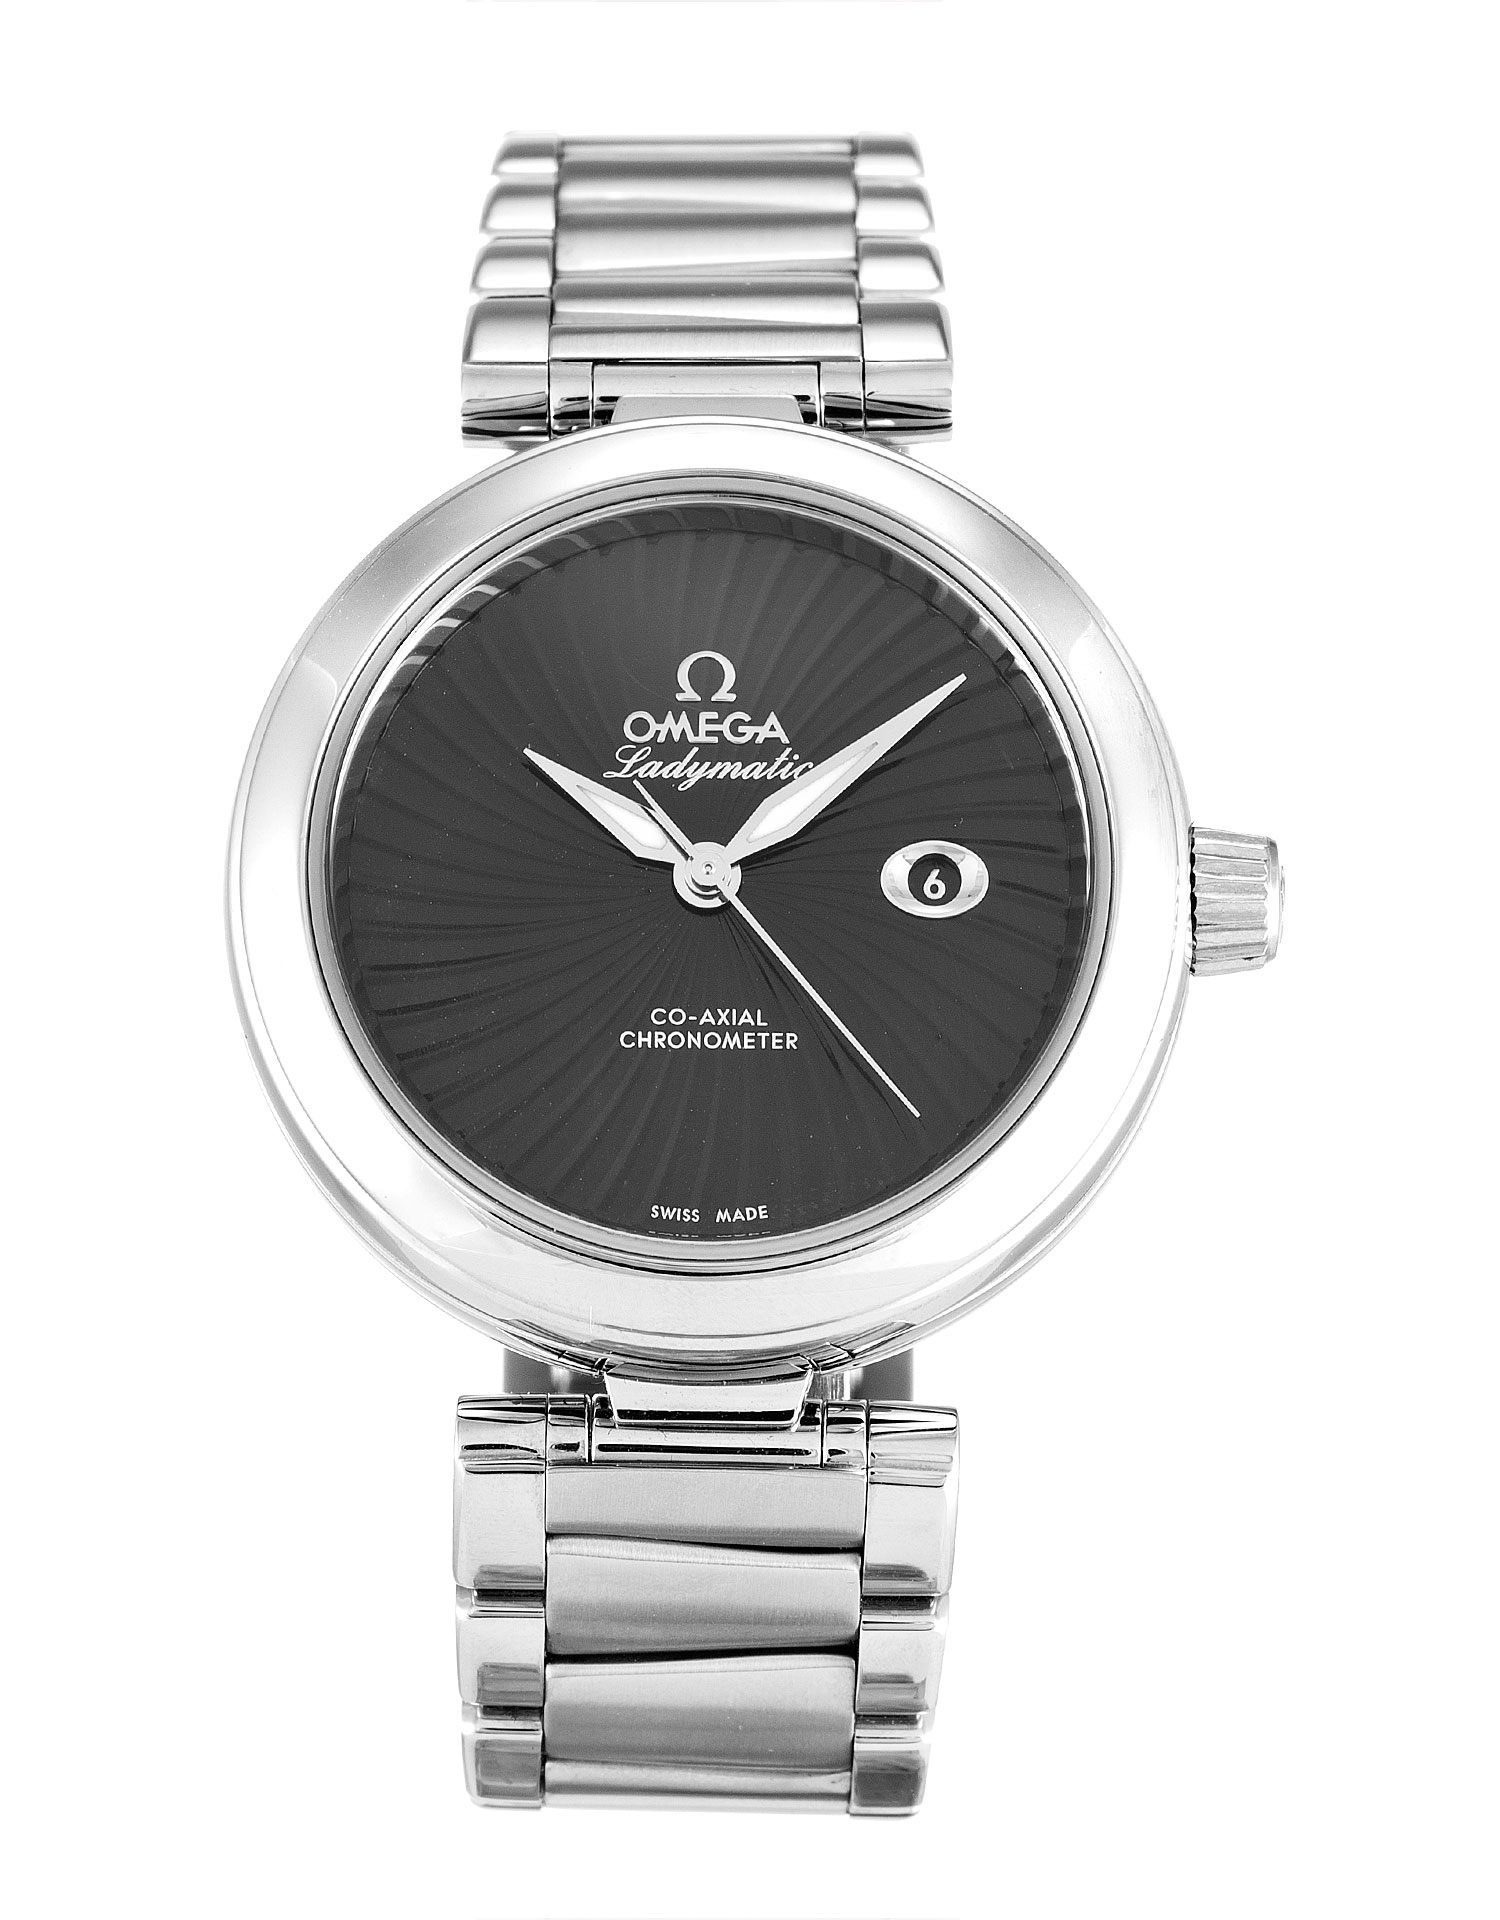 Omega De Ville Ladymatic 425.30.34.20.01.001 Ladies 34 Mm Steel Case Automatic Co-axial Movement – iapac.to